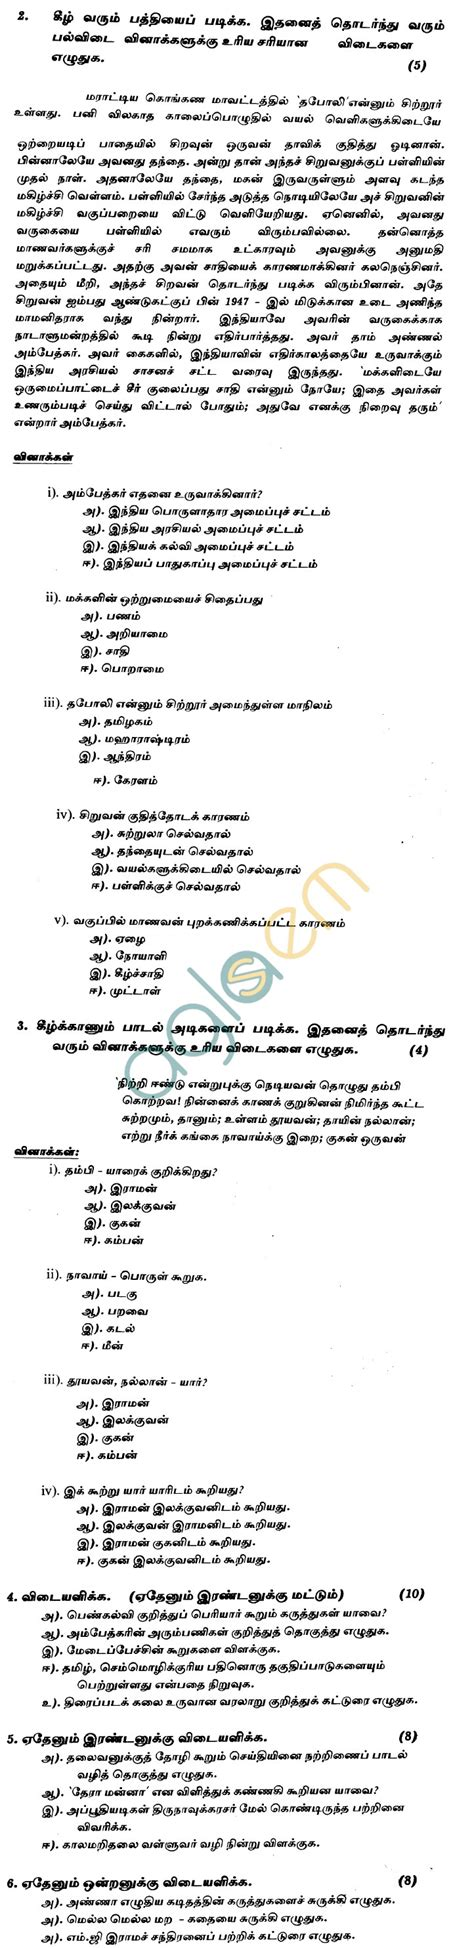 cbse board sle papers sa1 class x tamil